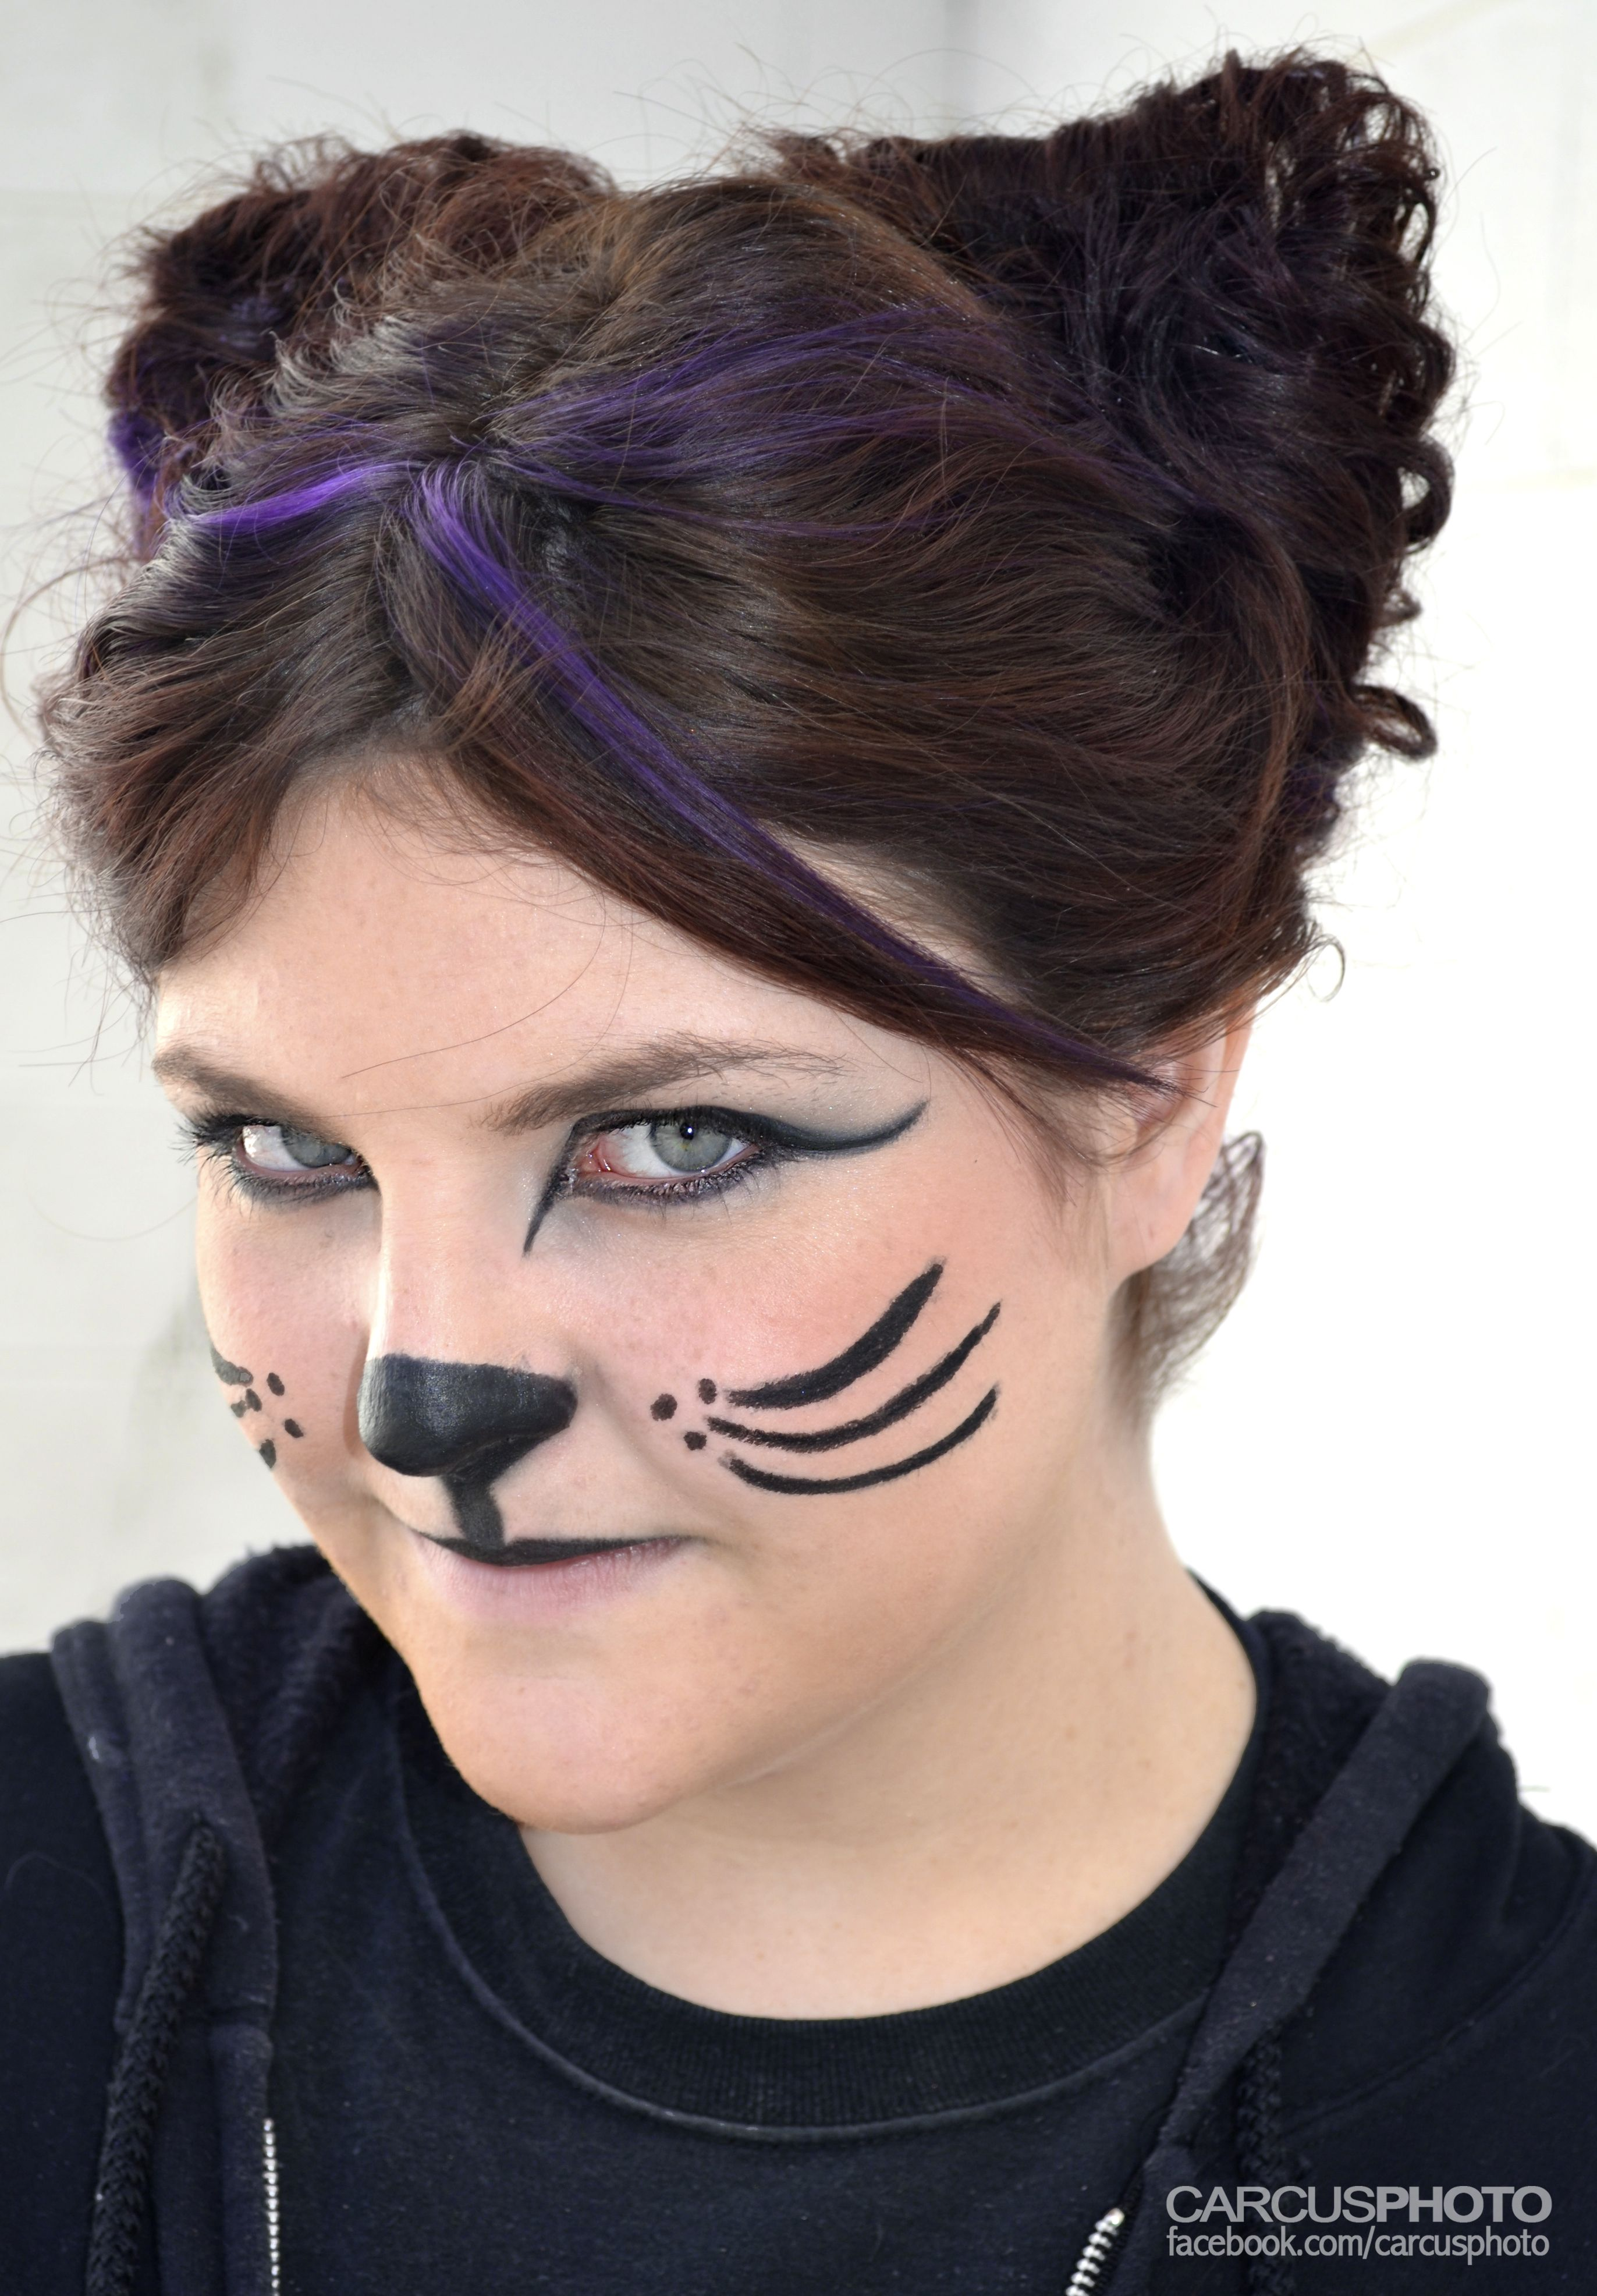 Cat Face Painting For Halloween Face Painting Halloween Kitty Face Paint Kids Face Paint